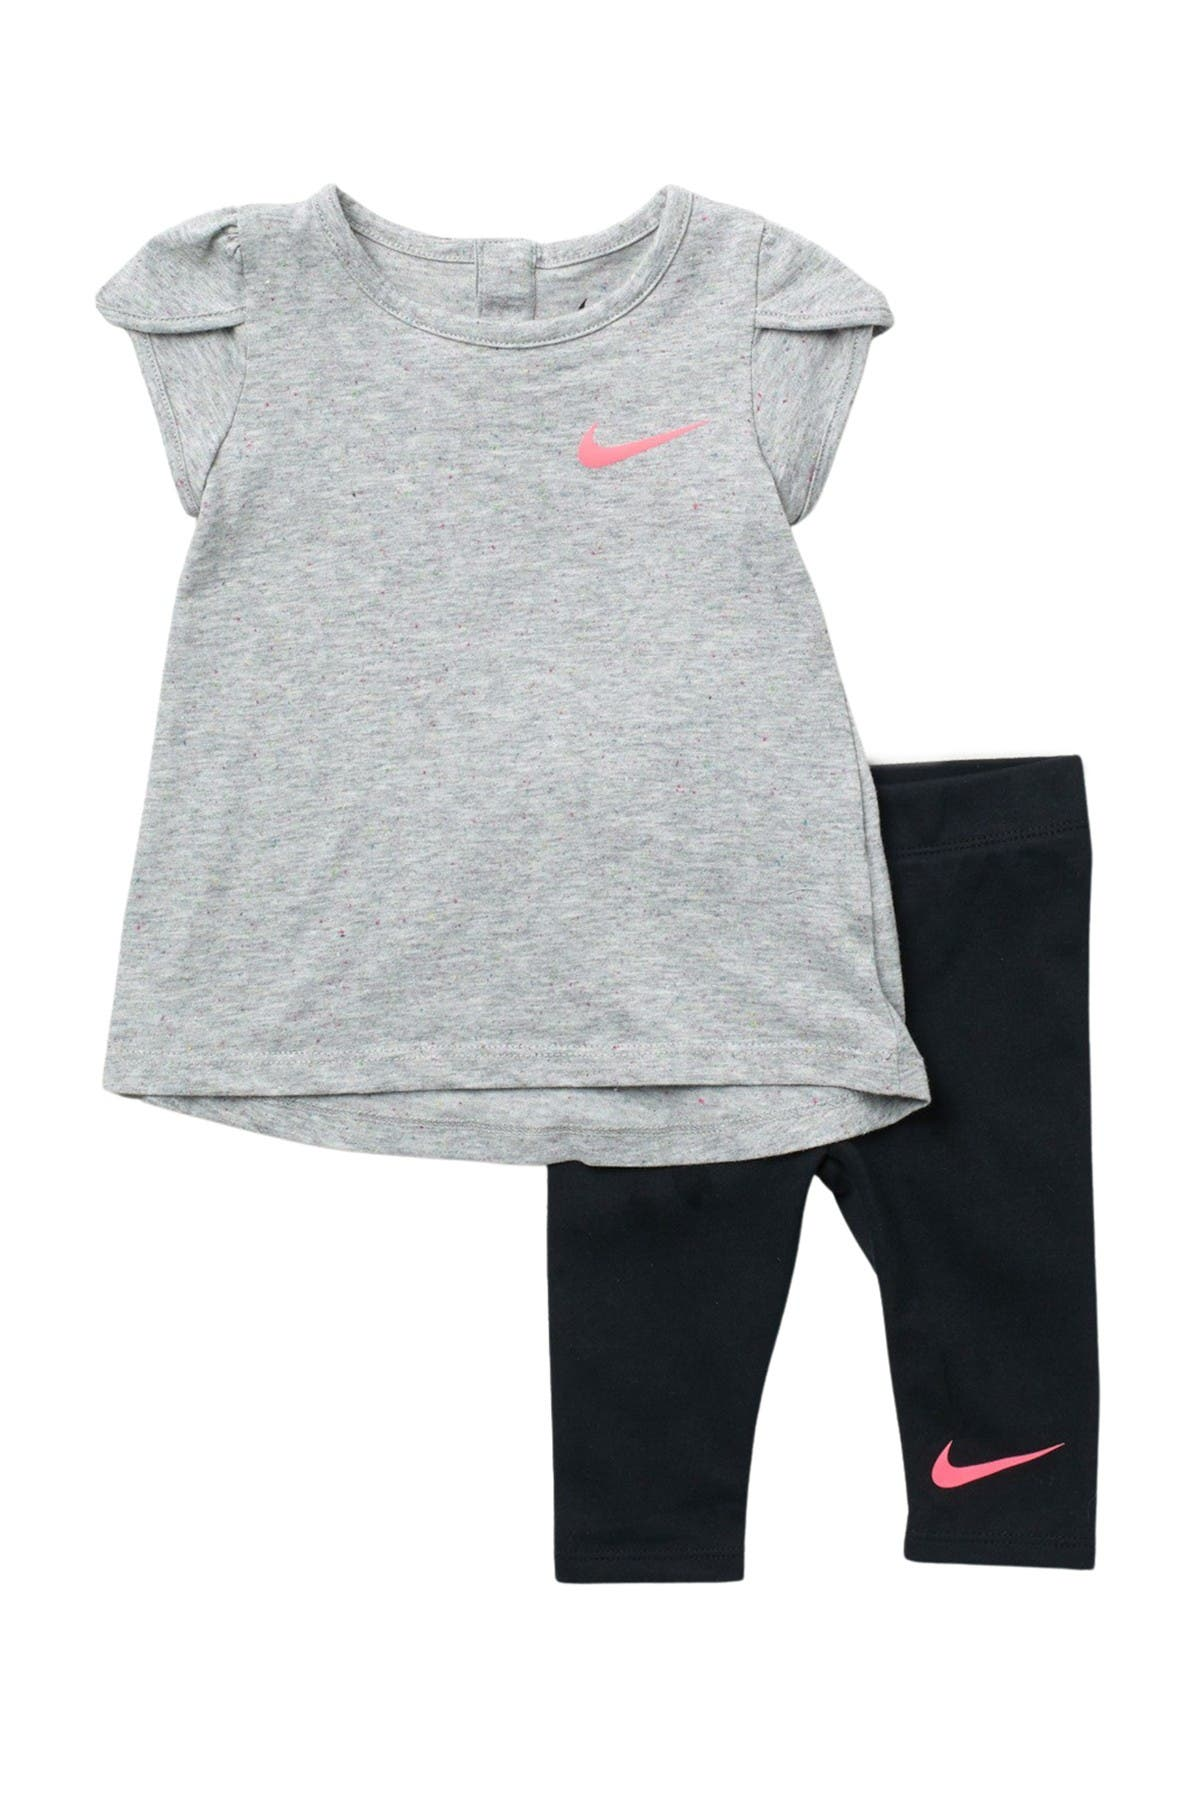 Image of Nike Confetti's Tunic Set